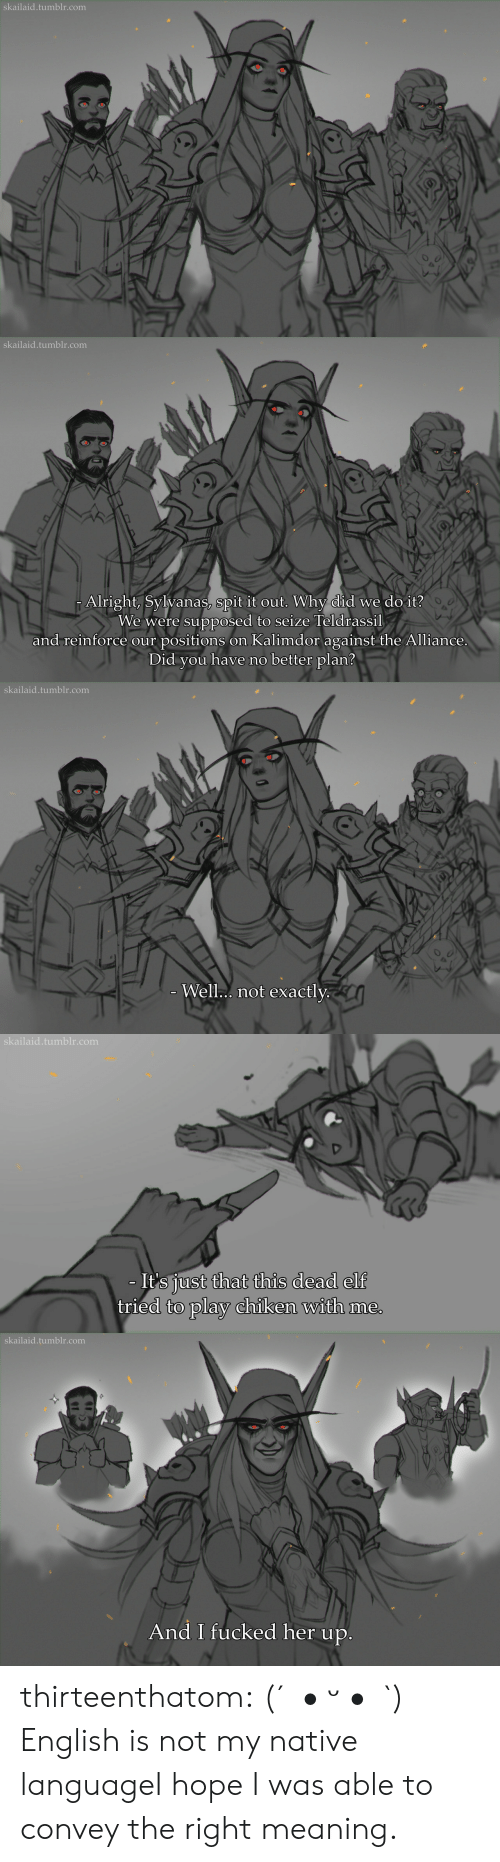 Positions: skailaid.tumblr.com   skailaid.tumblr.com  Alright, Sylvanas, spit it out. Why did we do it?  We were supposed to seize Teldrassil  and reinforce our positions on Kalimdor against the Alliance.  Did you have no better plan?   skailaid.tumblr.com  - Well.. not exactly.   skailaid.tumblr.com  - It's just that this dead elf  tried to play chiken with me.   skailaid.tumblr.com  And I fucked her up. thirteenthatom:    (´。• ᵕ •。`)   English is not my native languageI hope I was able to convey the right meaning.